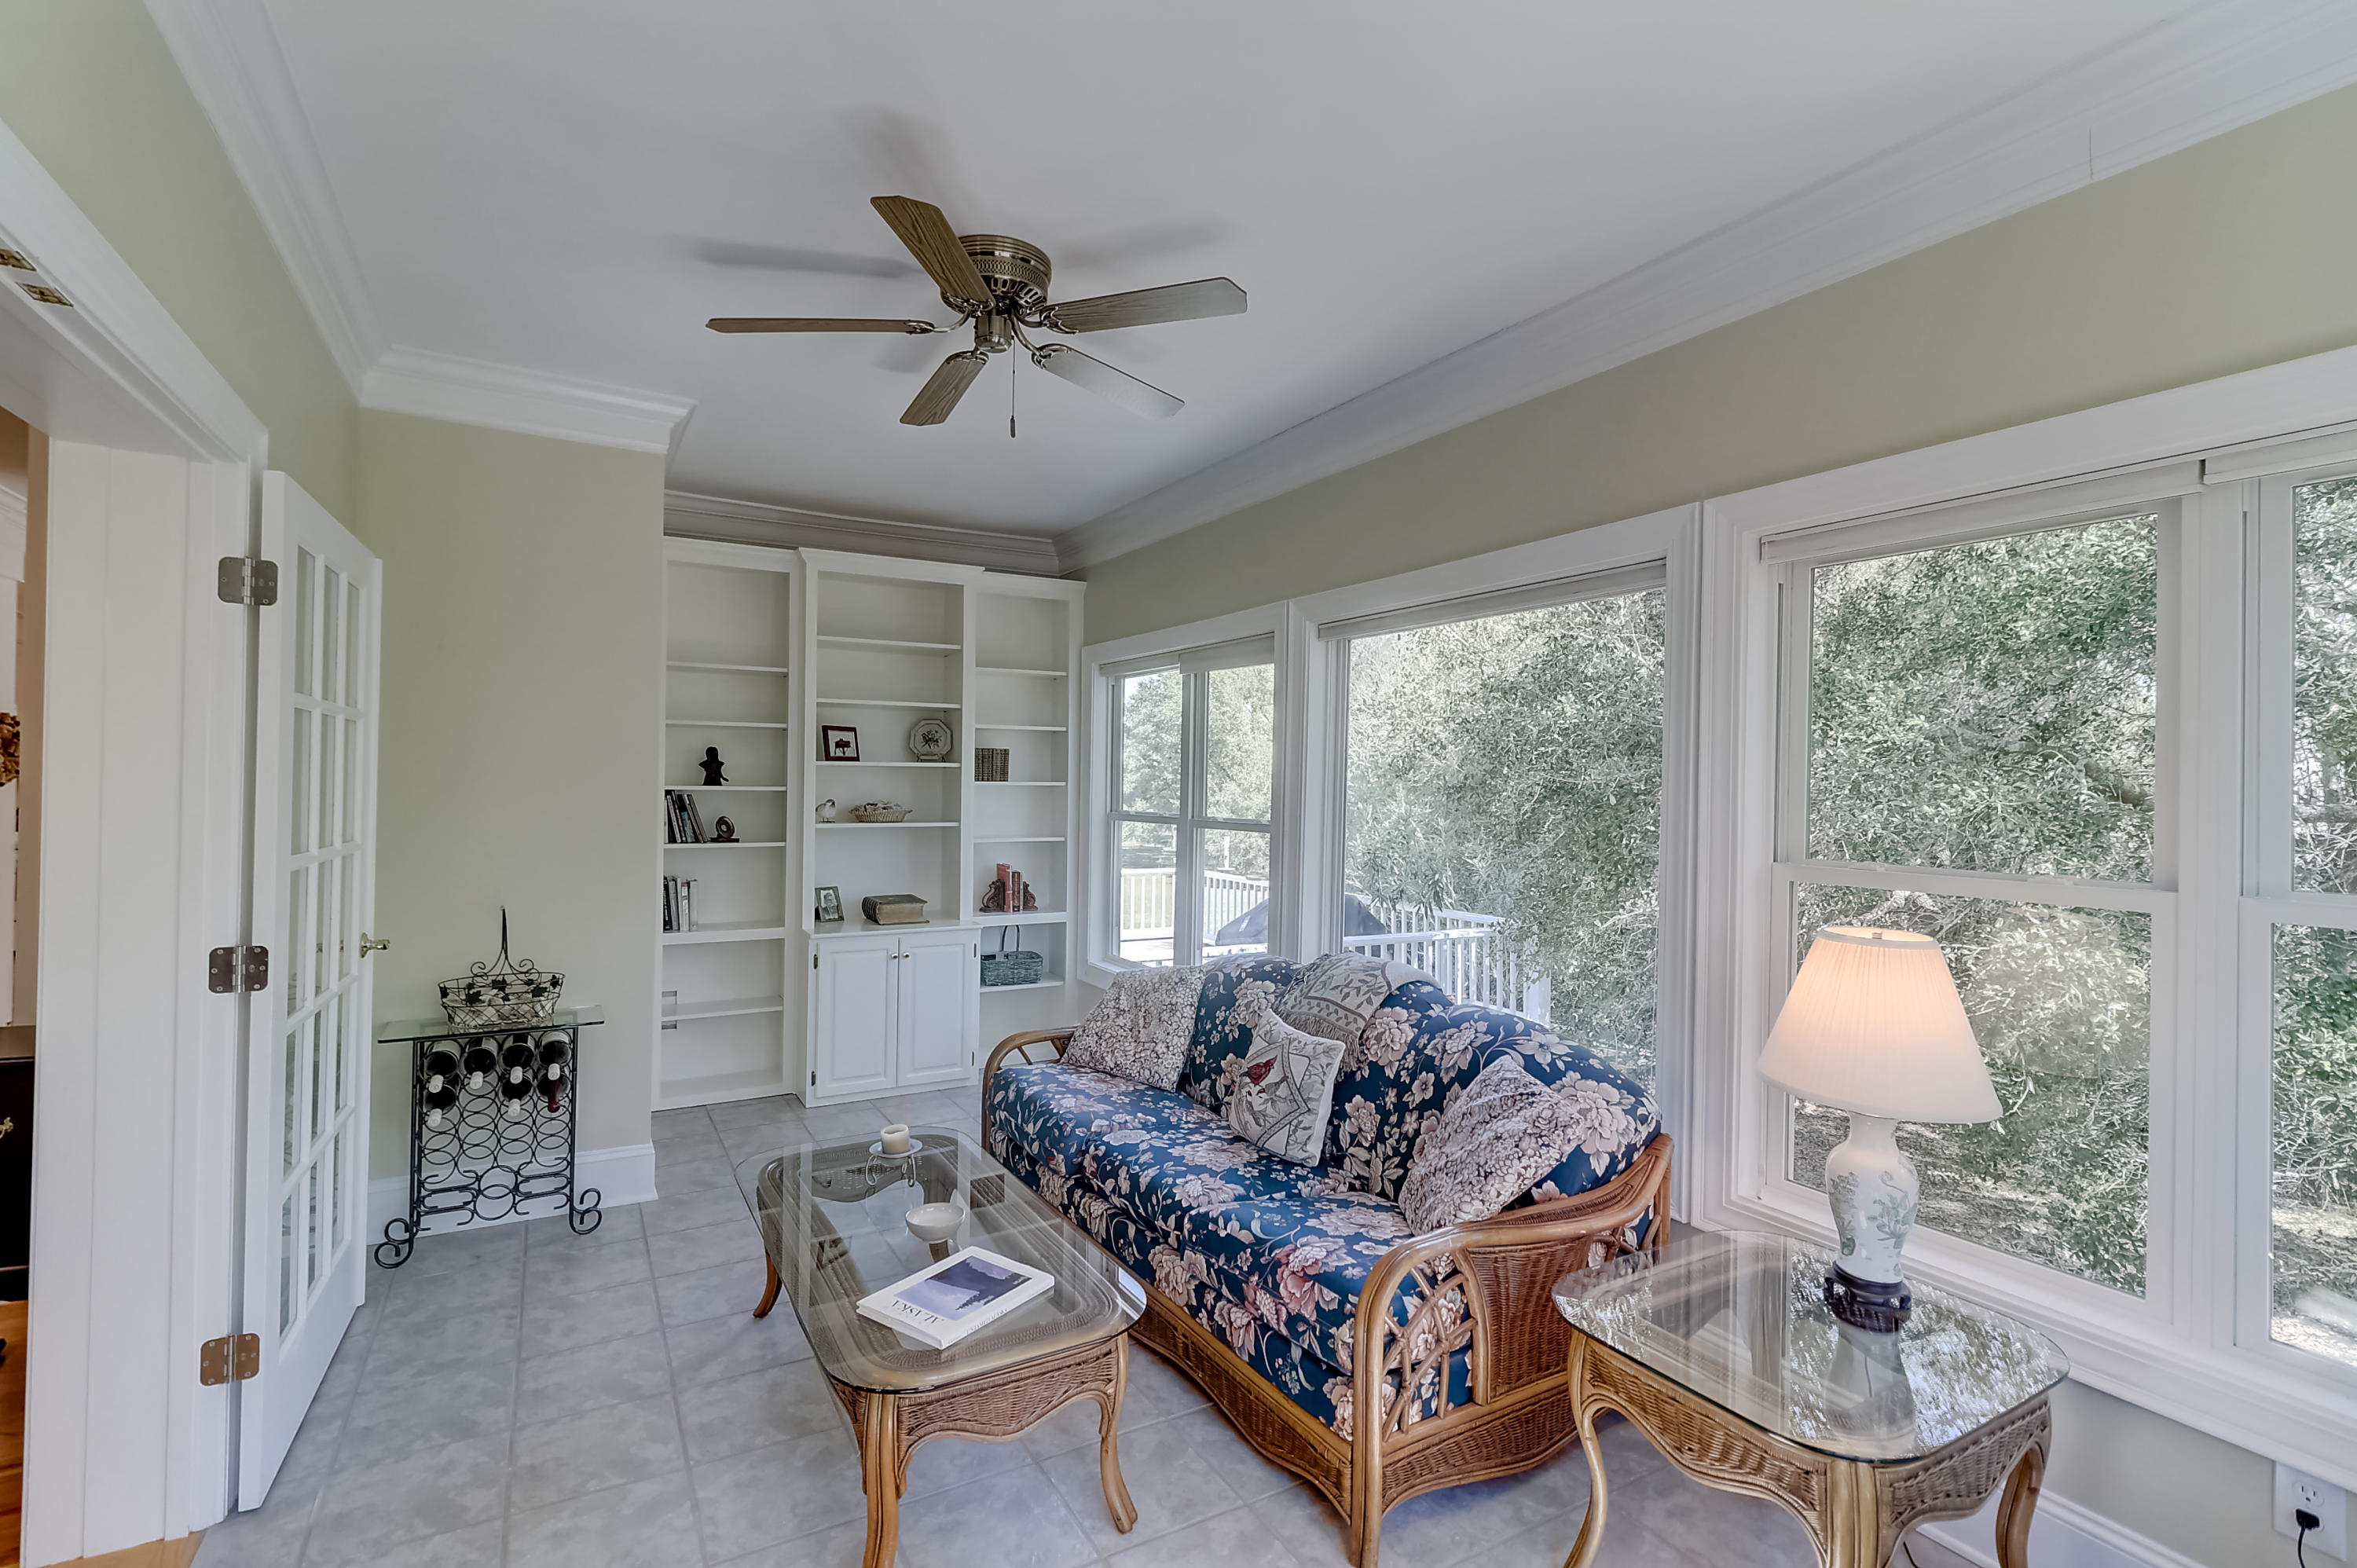 Stratton Place Homes For Sale - 1494 Stratton, Mount Pleasant, SC - 50